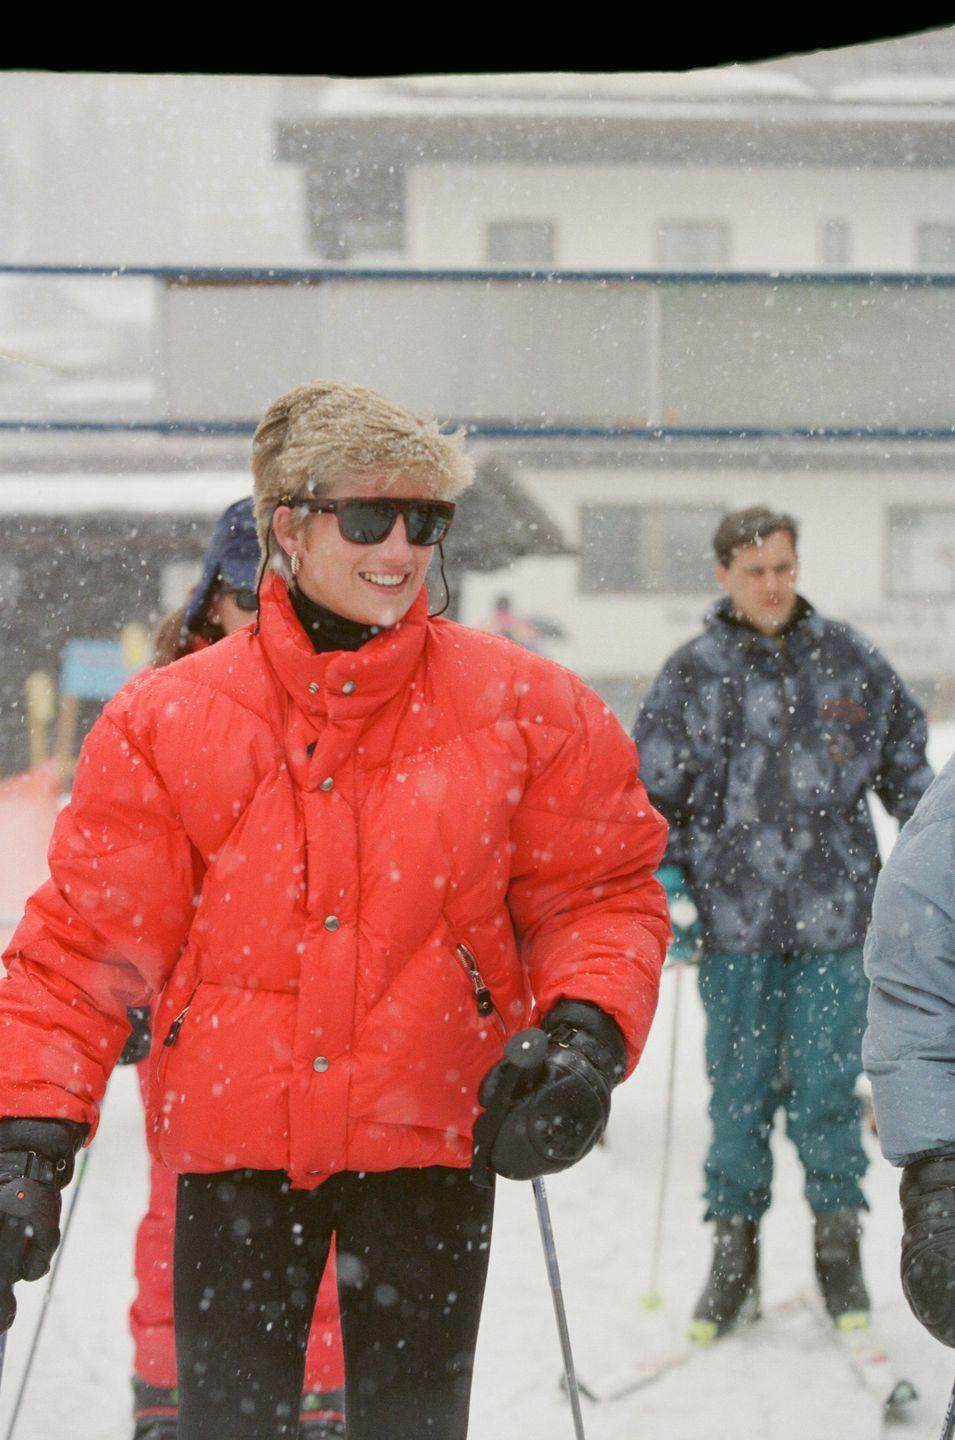 <p>Princess Diana always looked stylish on the slopes. Here, her puffer jacket provides a pop of color, while the rest of her understated outfit makes this a timeless and easy to replicate look. Perfect to transition from a day of outdoor activities to whatever your after hours choice may be. </p>